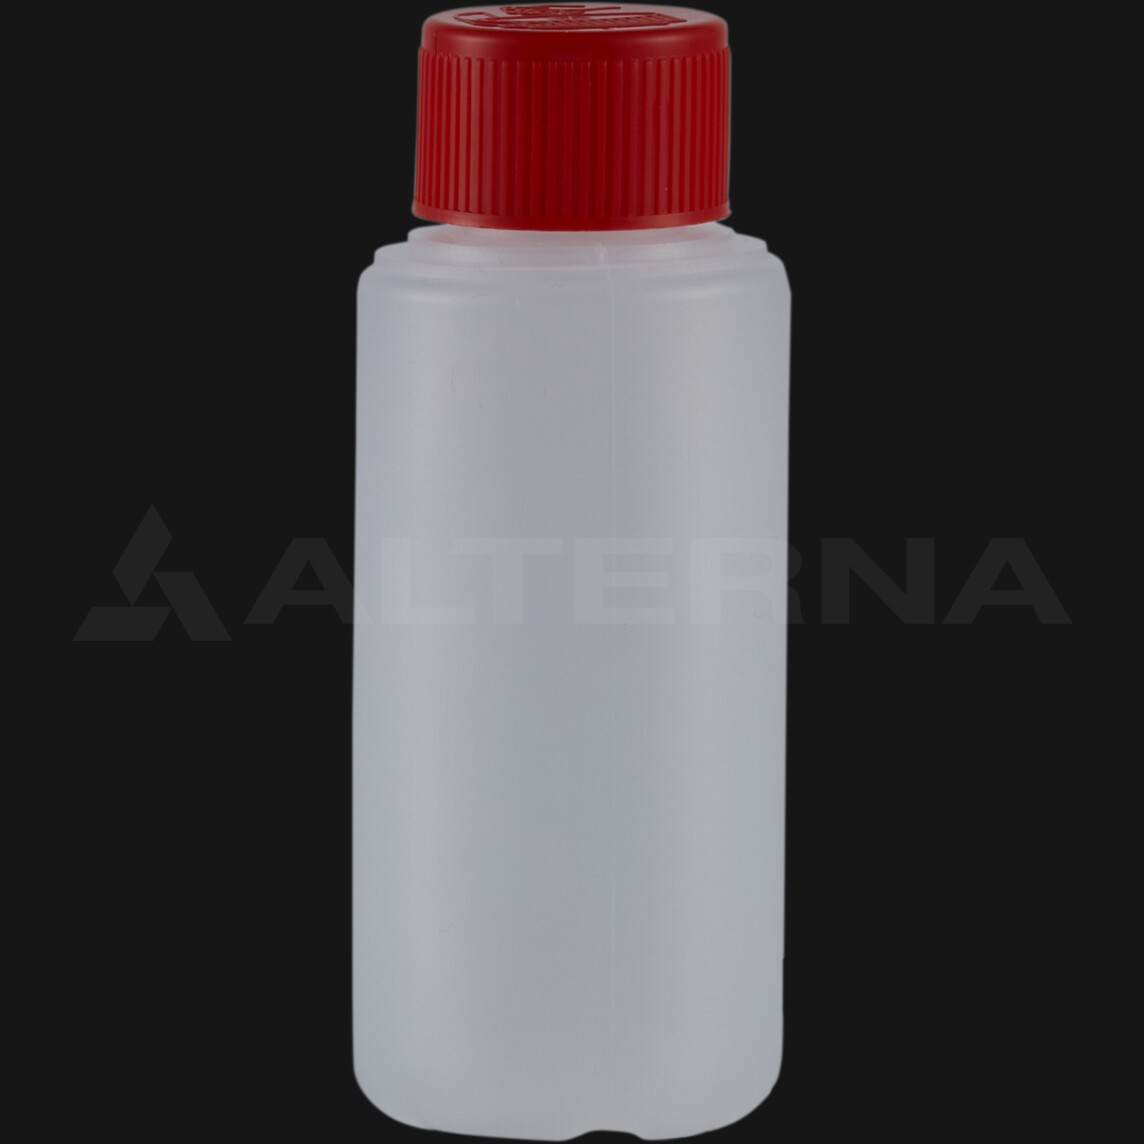 100 ml HDPE Bottle with 28 mm Child Resistant Cap